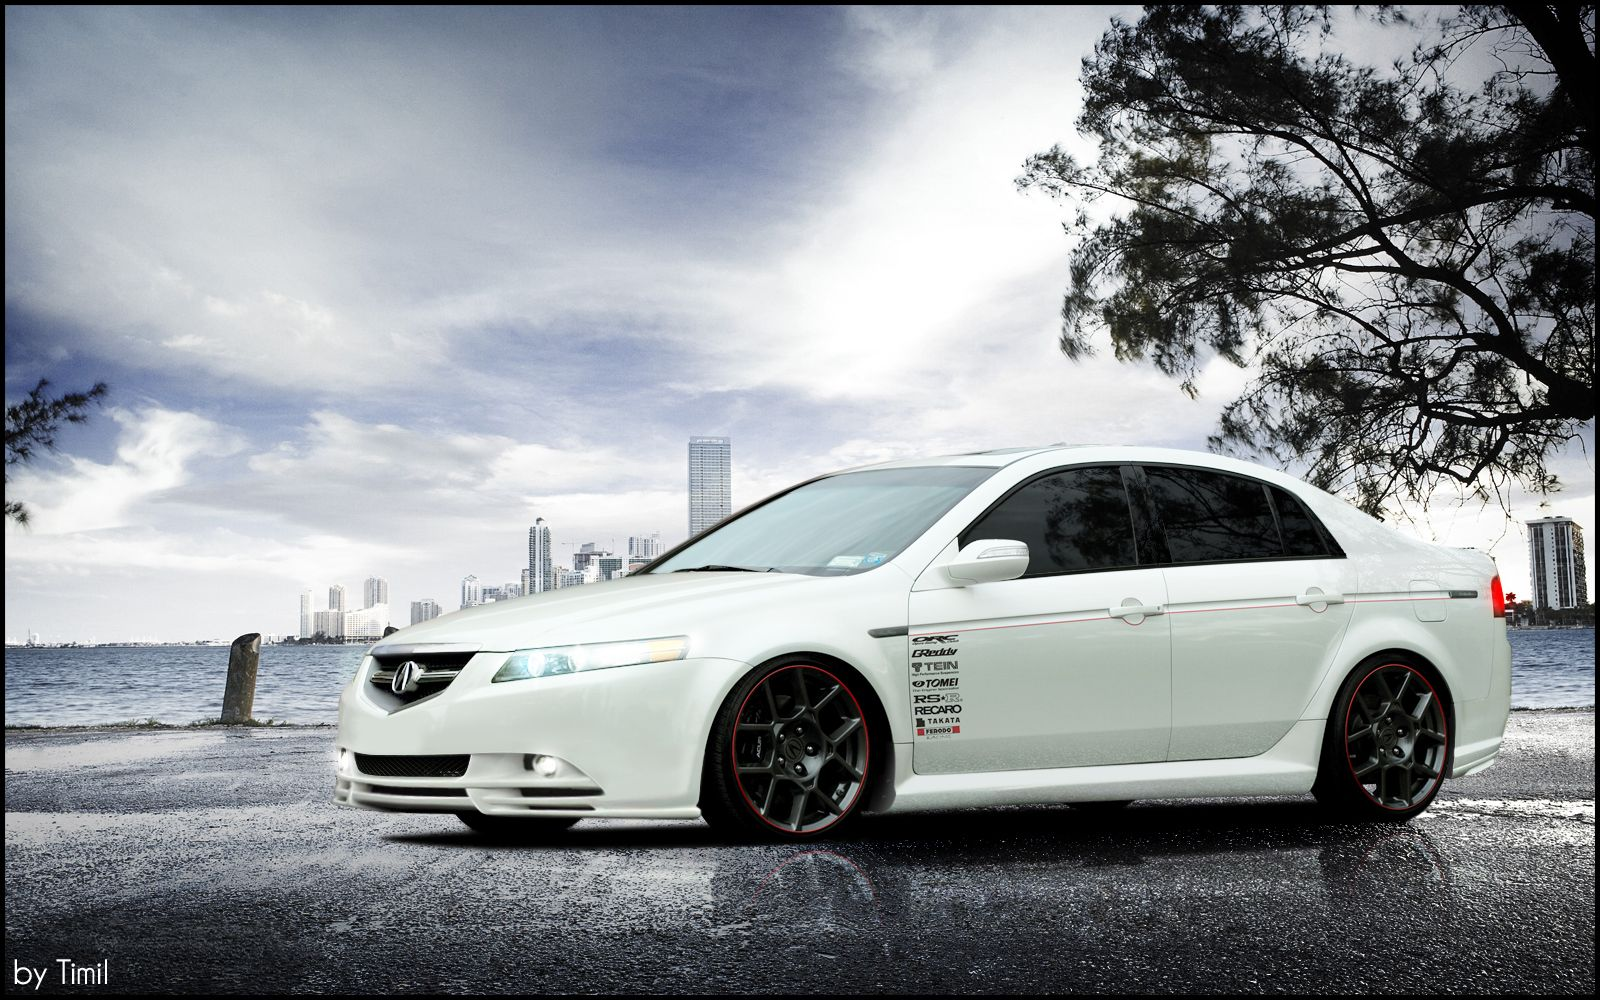 In with Acura TL | The Fast Life | Pinterest | Acura tl, Cars ...